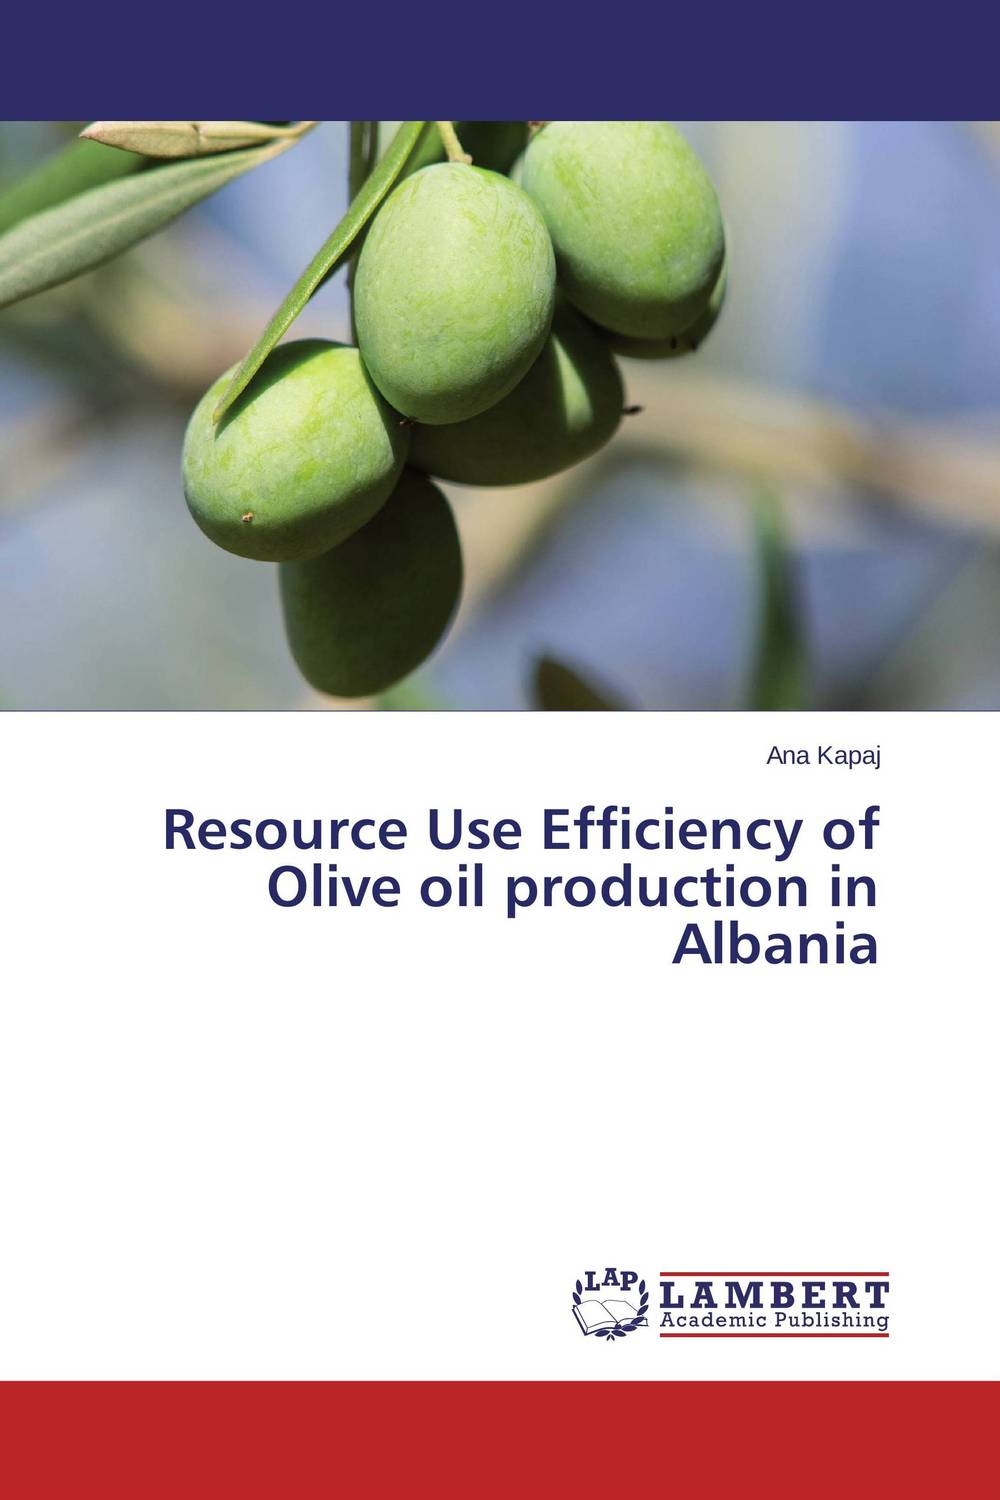 Resource Use Efficiency of Olive oil production in Albania oil separator integrates well the different techniques of oil separation in the design of its products